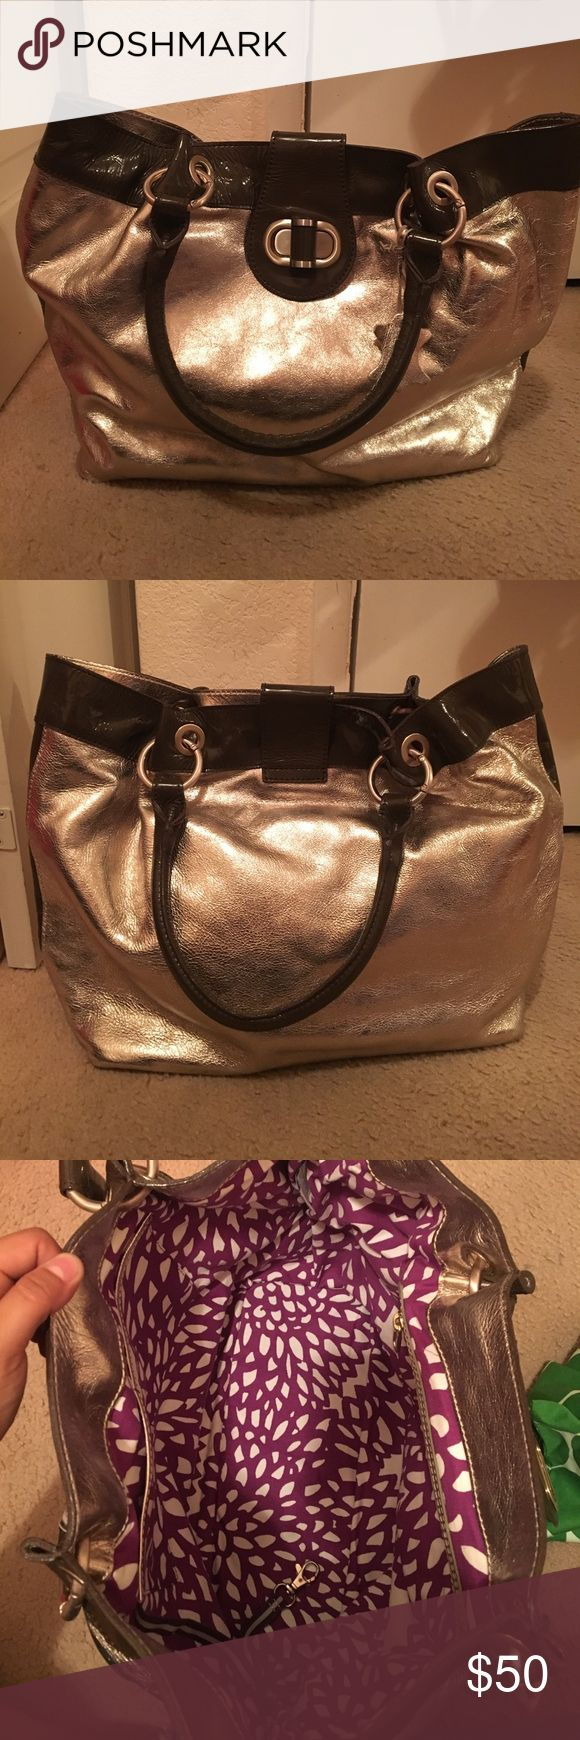 Boden Metallic bag(comes with Garment Bag) Metallic bag with brown leather Boden Bags Shoulder Bags